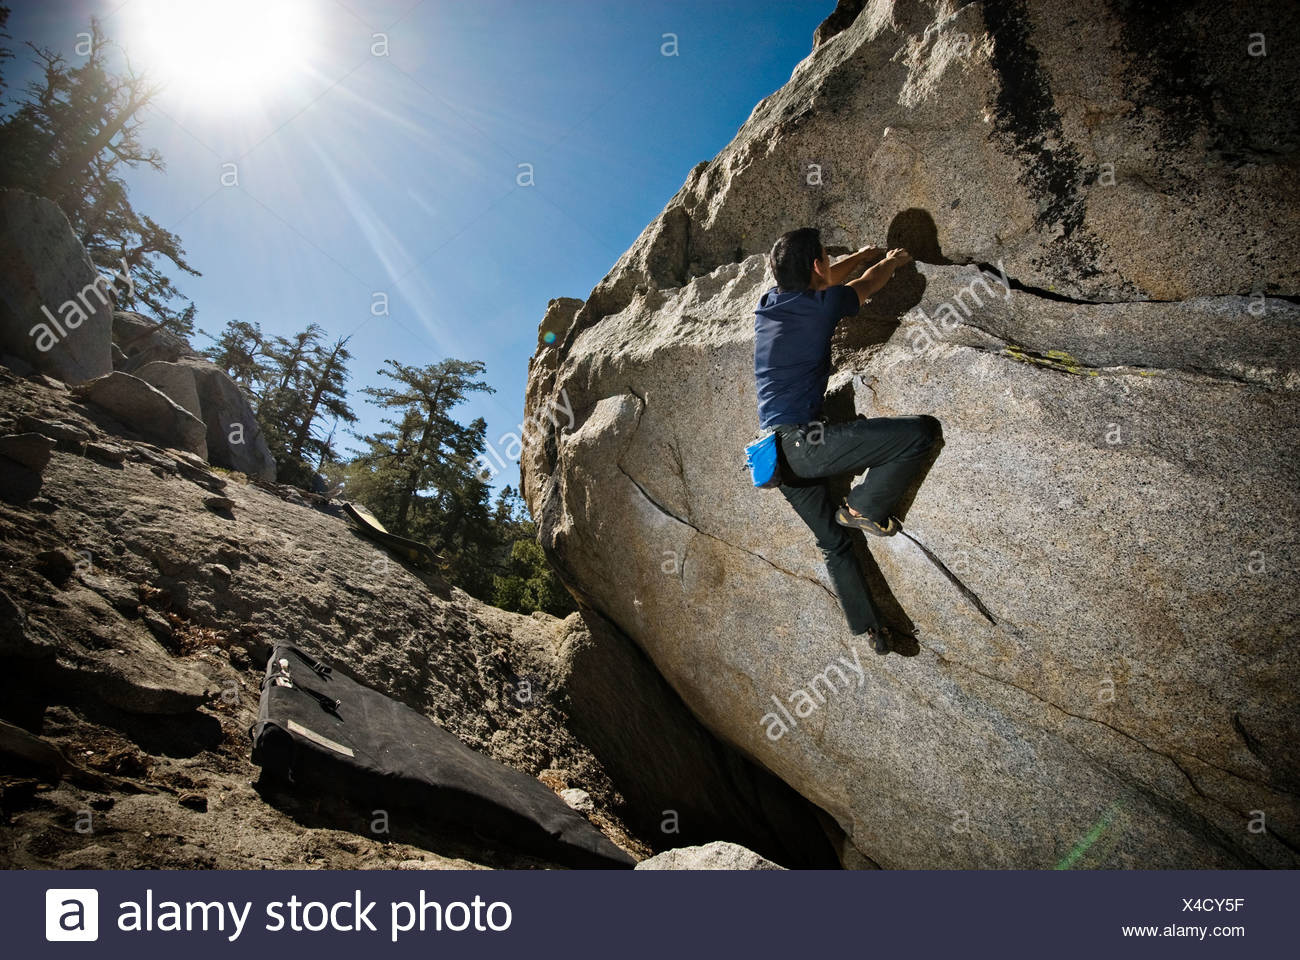 An Asian-American man rock climbs a boulder problem at The Tramway, Palm Springs, CA. Stock Photo